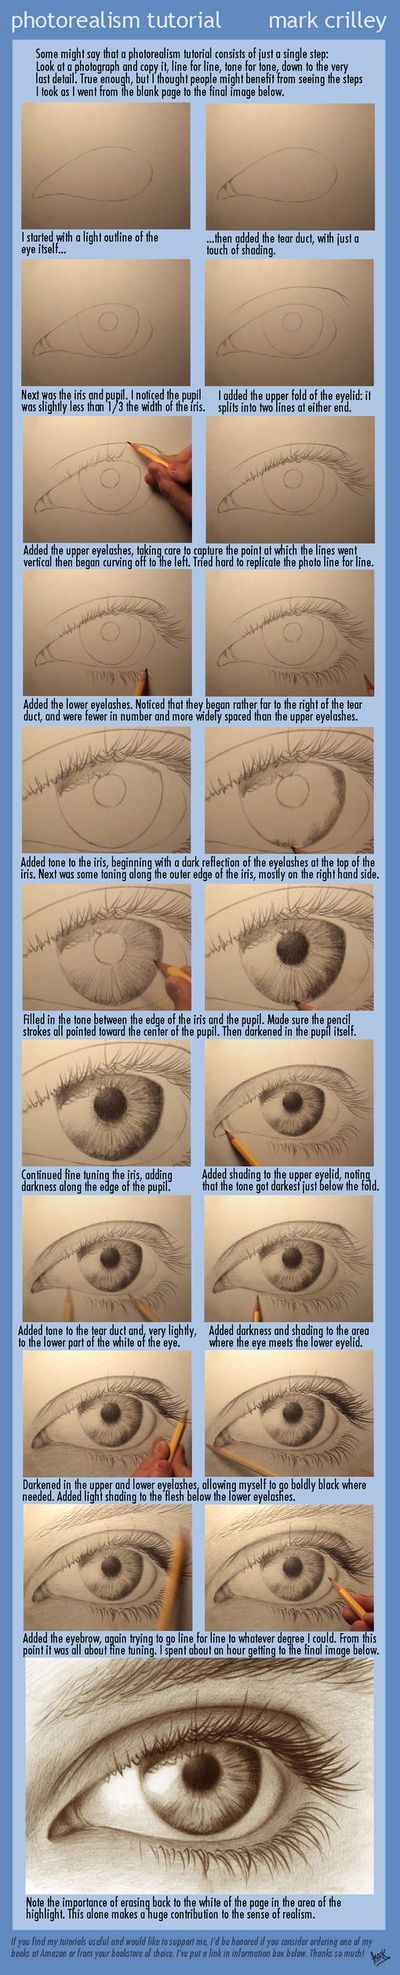 How to draw a photorealistic eye